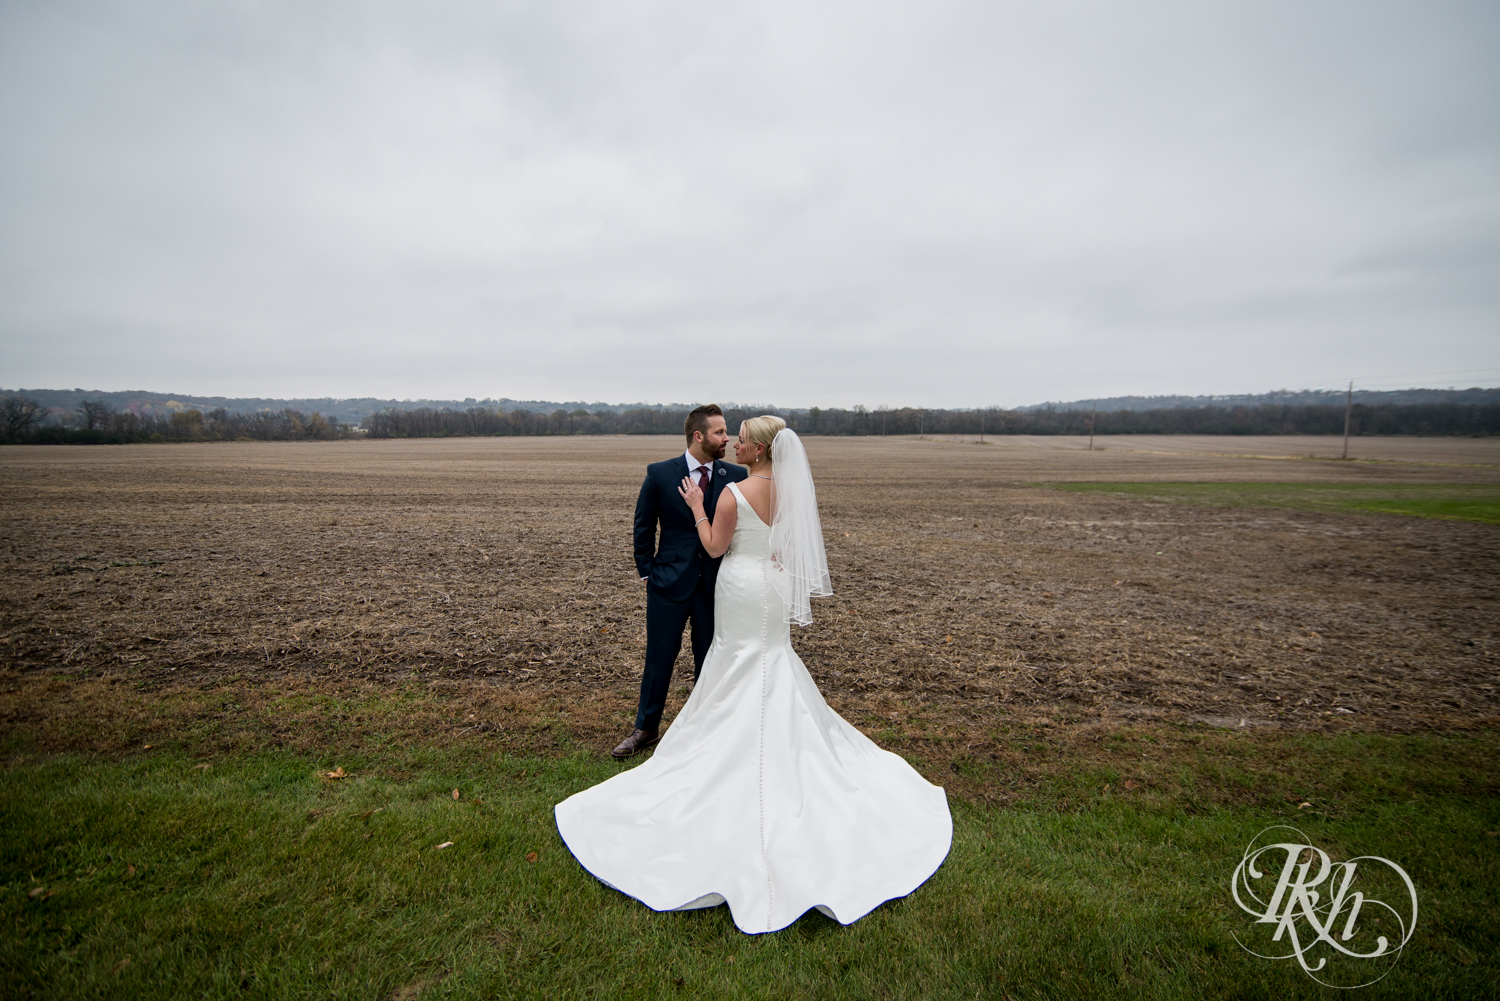 Amanda & Luke - Minnesota Wedding Photography - Mayowood Stone Barn - Rochester - RKH Images - Blog (30 of 67).jpg